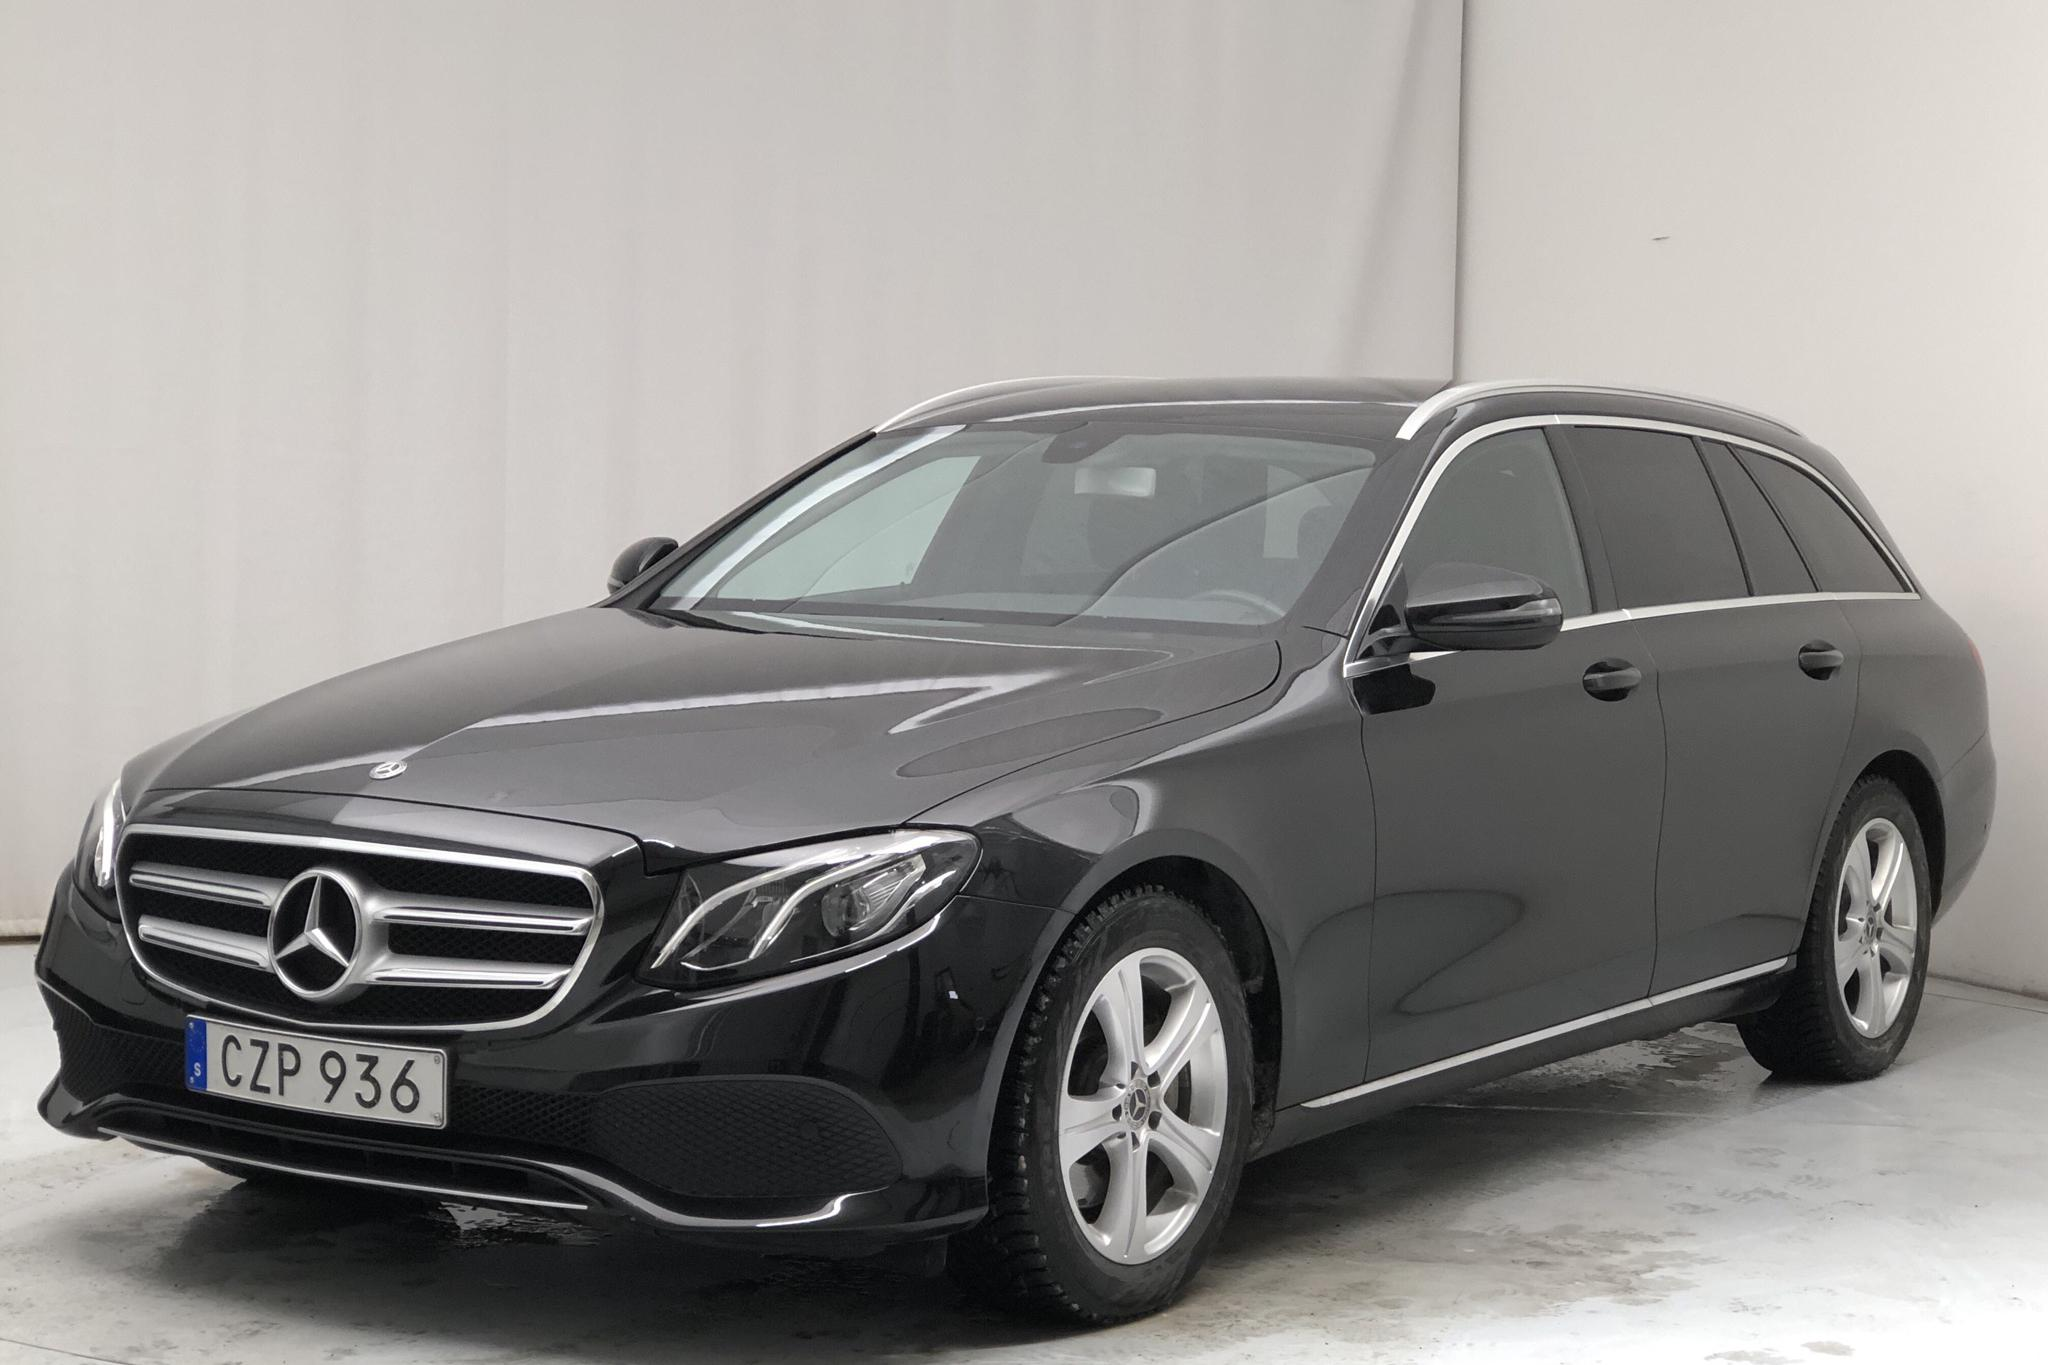 Mercedes E 220 d 4MATIC Kombi S213 (194hk) - 138 660 km - Automatic - black - 2017